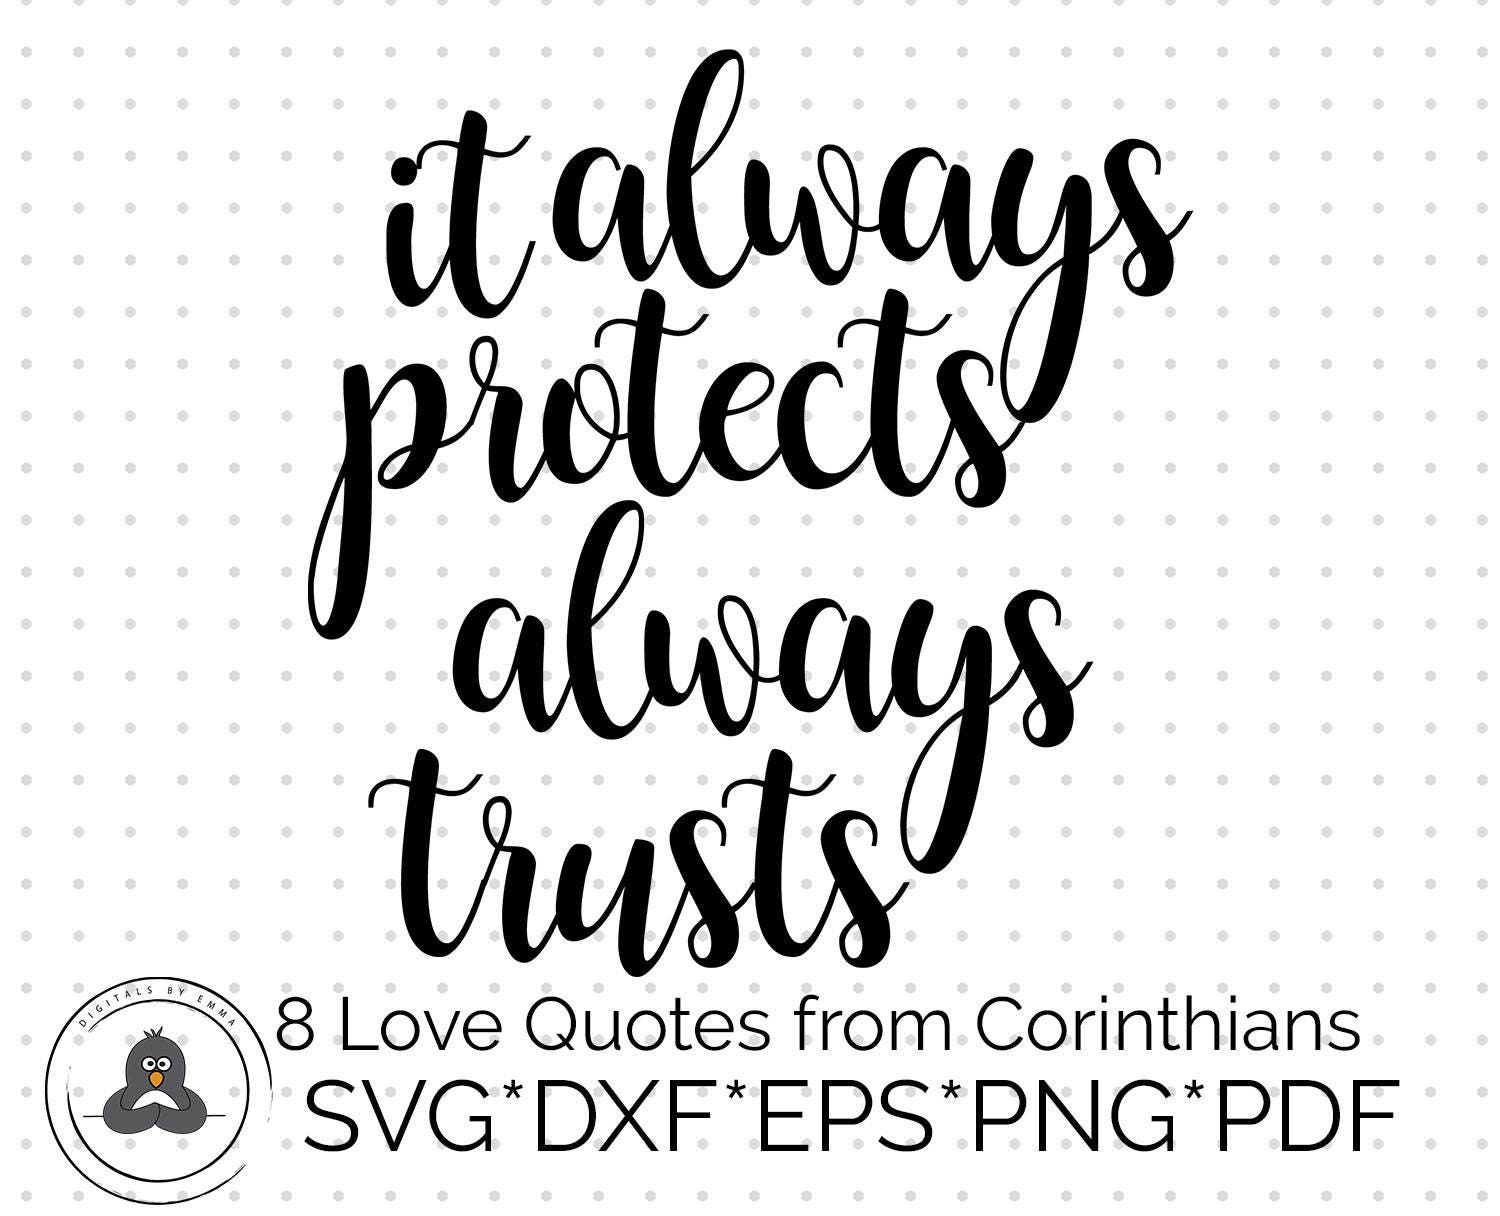 Corinthians Love Quotes 8 Love Quotes From The Bible 1 Corinthians 13 The Way Of Love